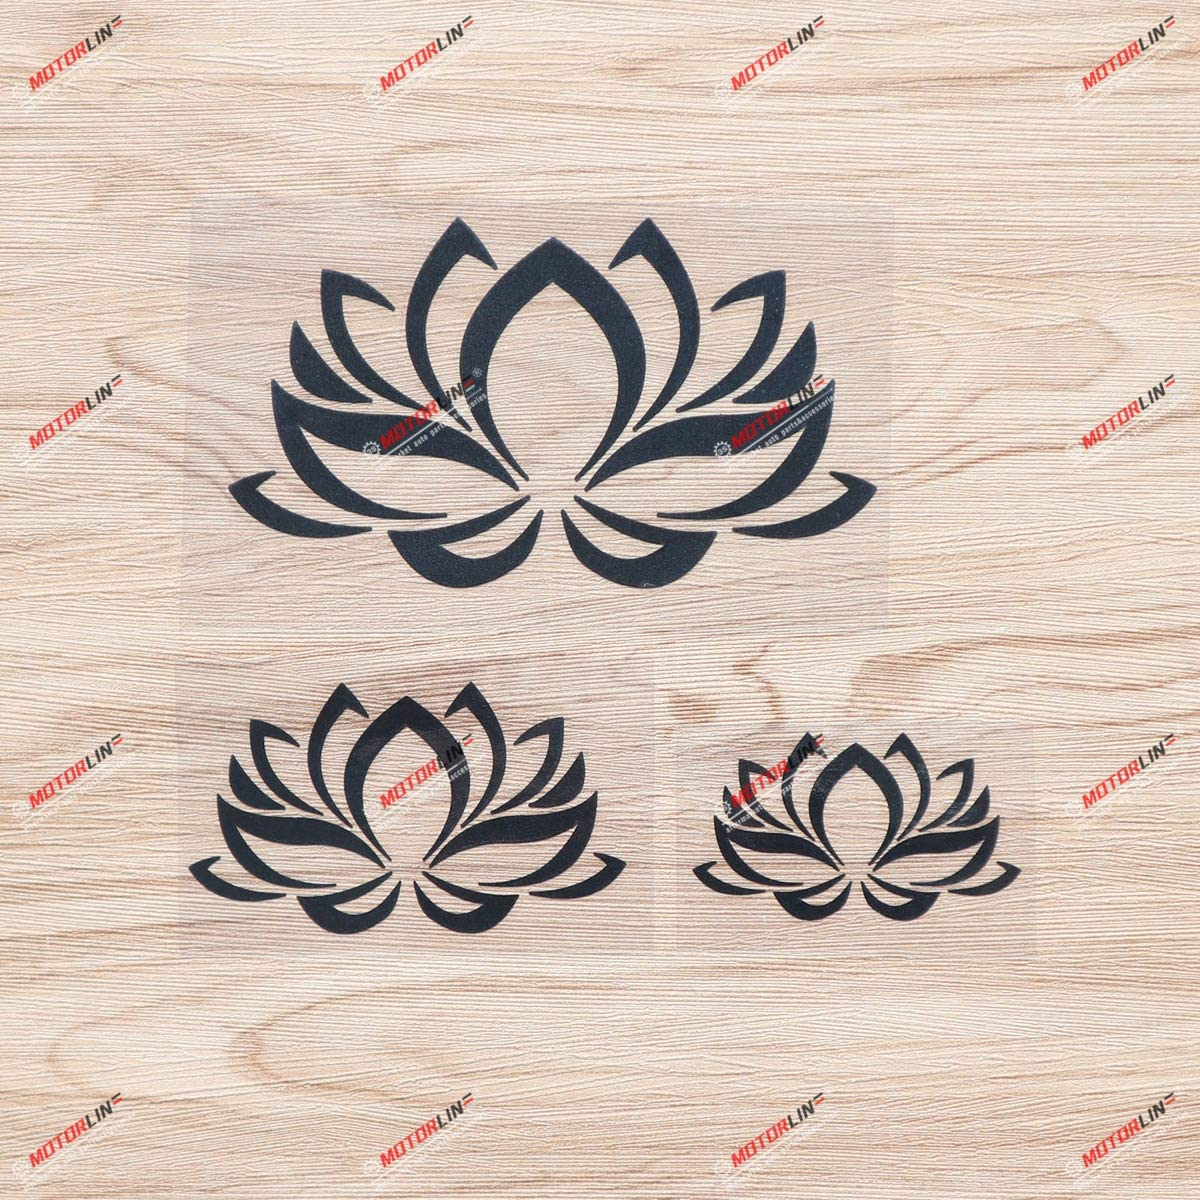 Lotus Flower Yoga India Vinyl Decal Sticker - 3 Pack Black, 3 Inches, 4 Inches, 6 Inches - Style B No Background for Car Boat Laptop Cup Phone